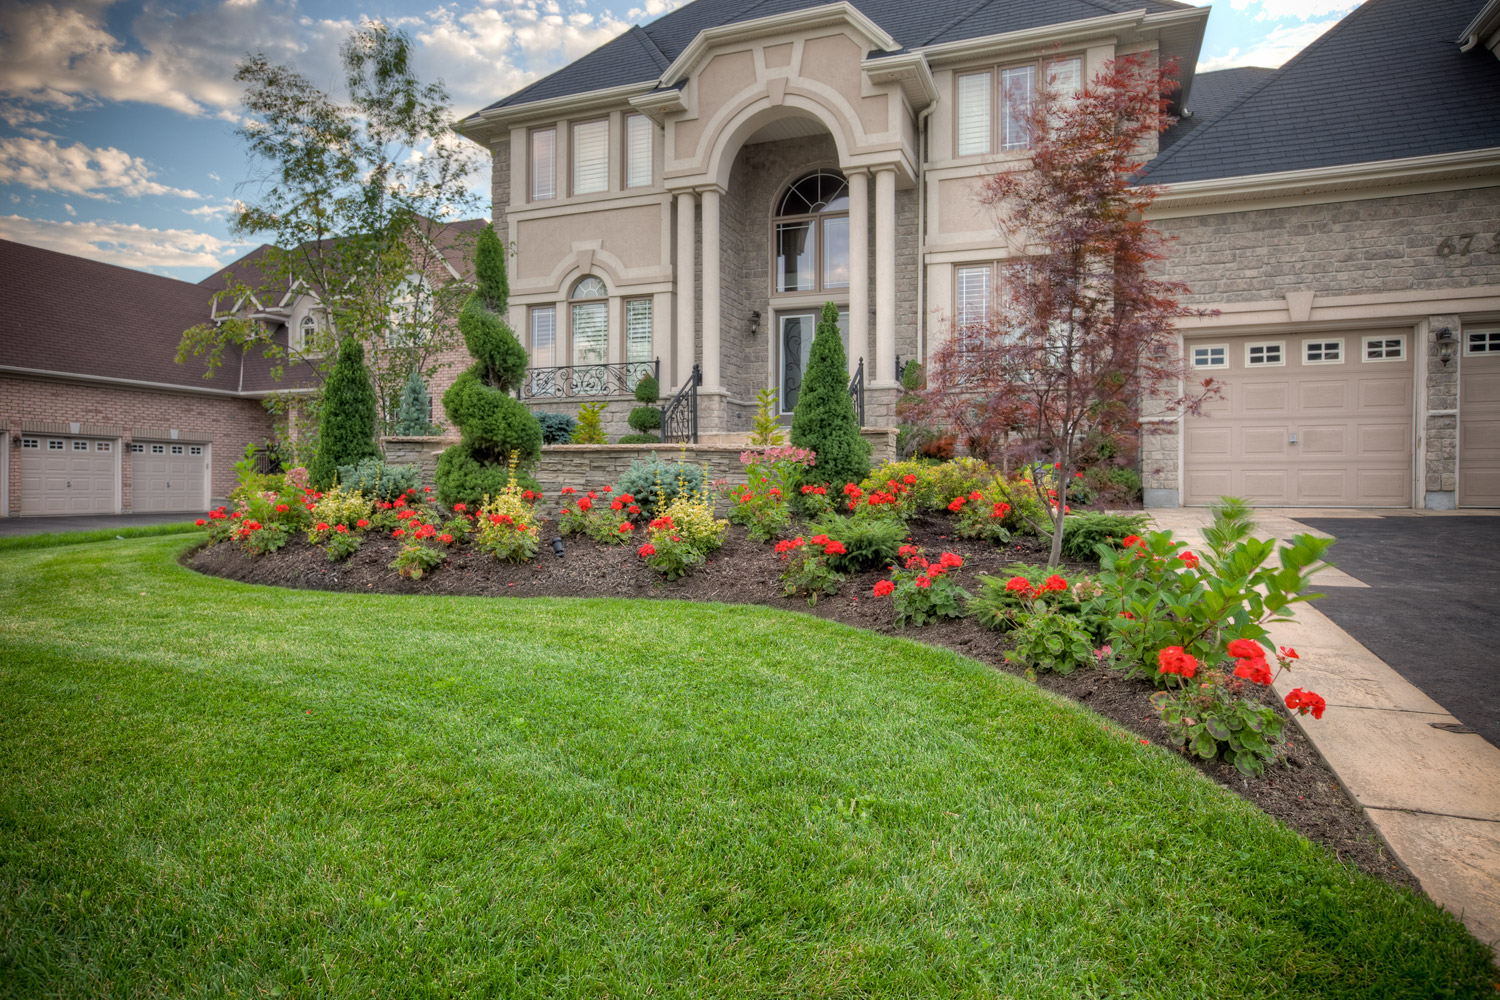 Some ideas of front yard landscaping for a small front for New house garden design ideas